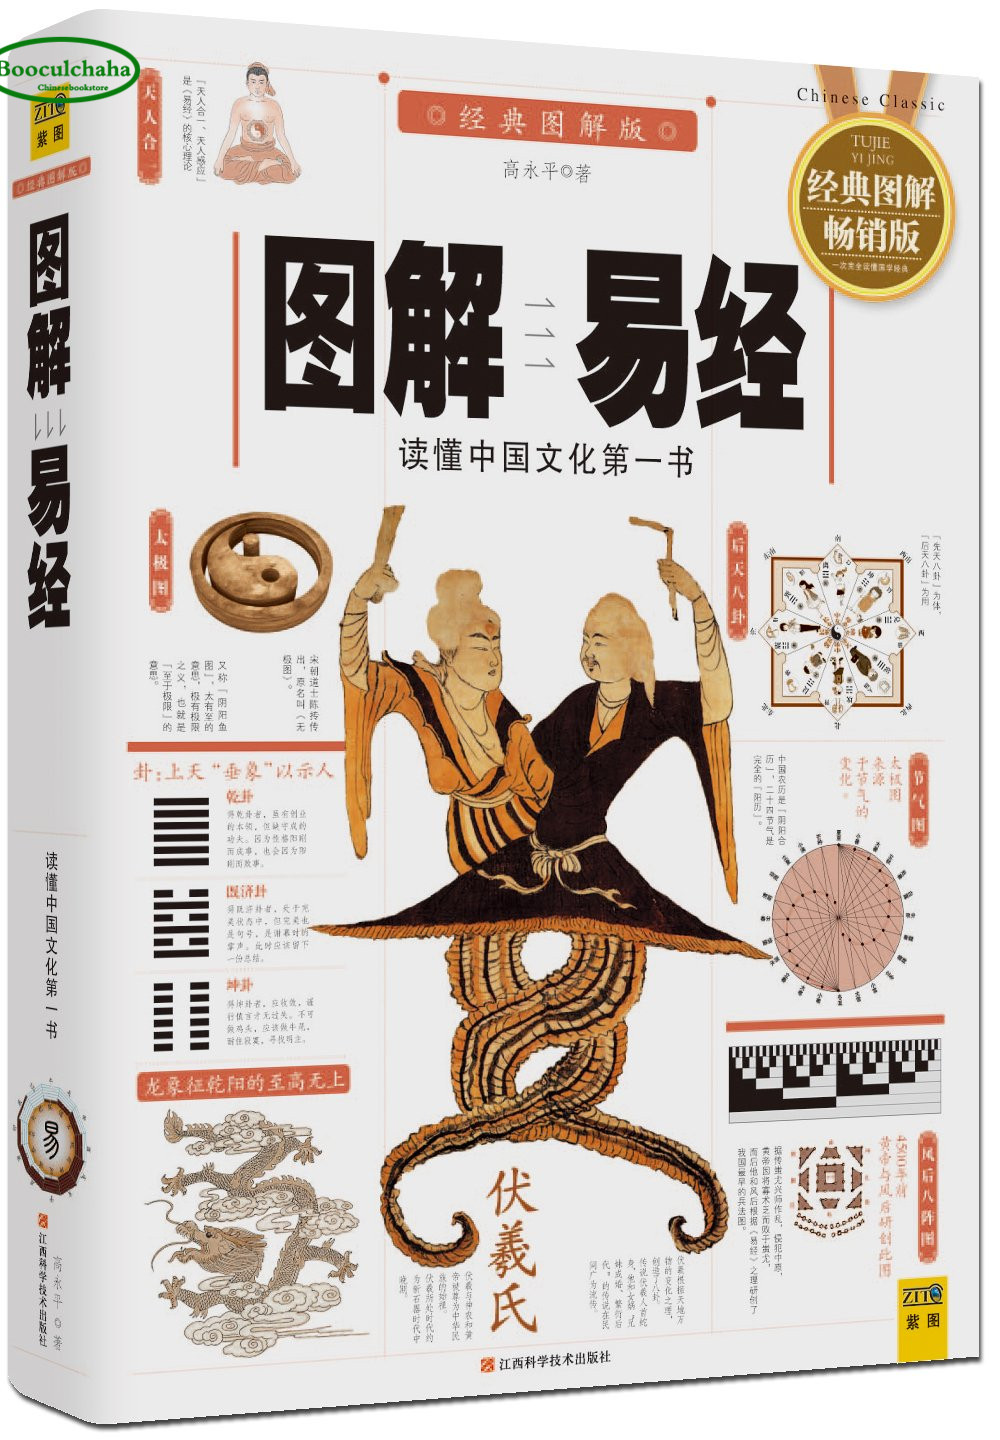 Illustration of the Book of Changes Master Chinese traditional culture book classic Philosophy divination fengshui entry